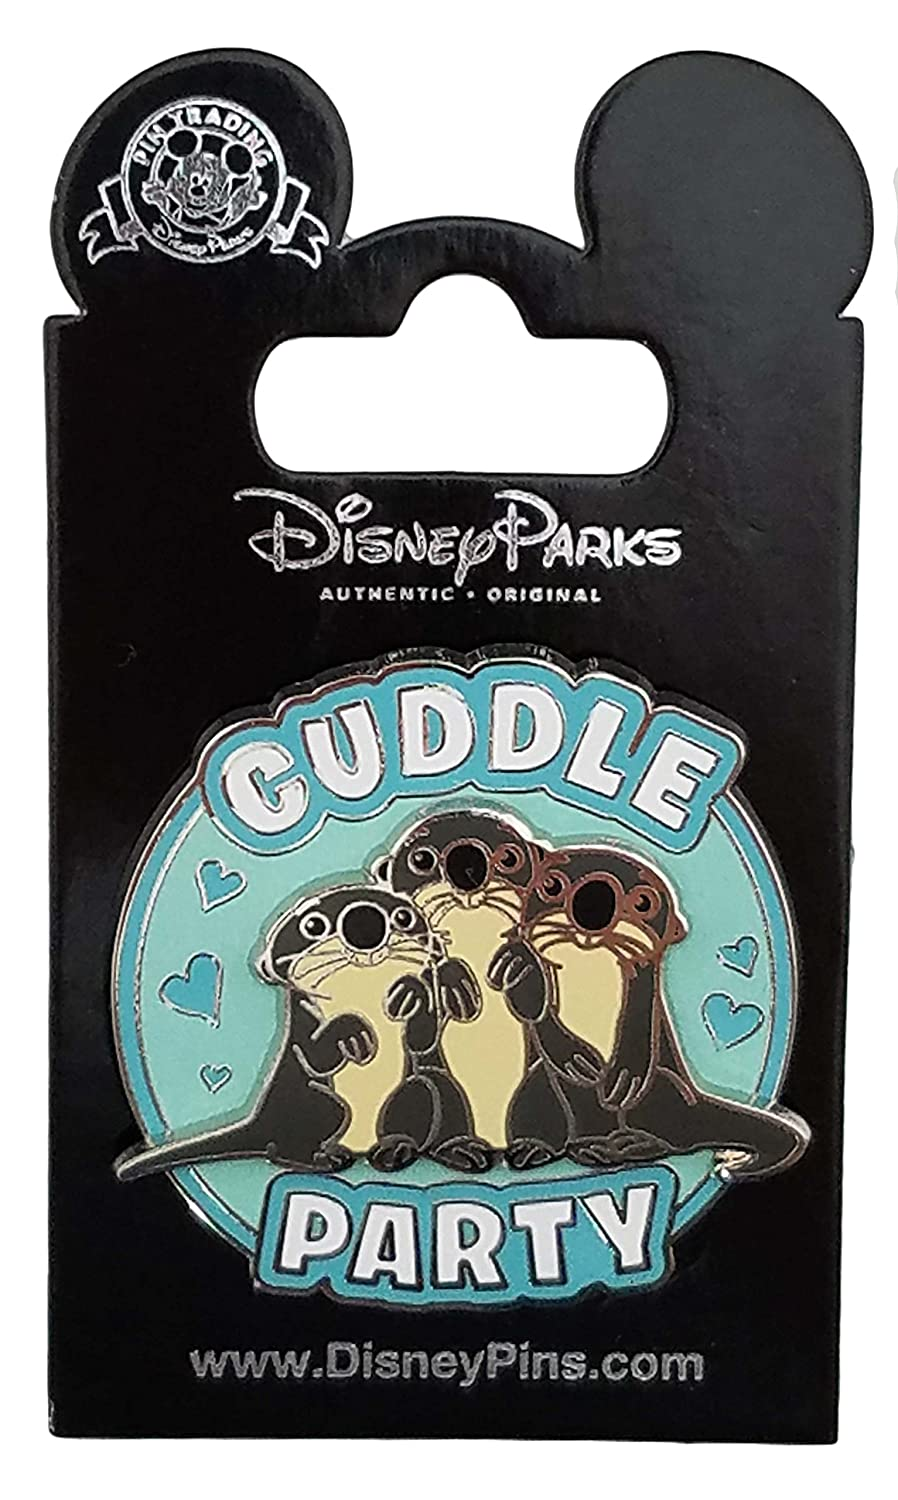 Disney Parks Finding Dory Otters Cuddle Party Disney Pin New